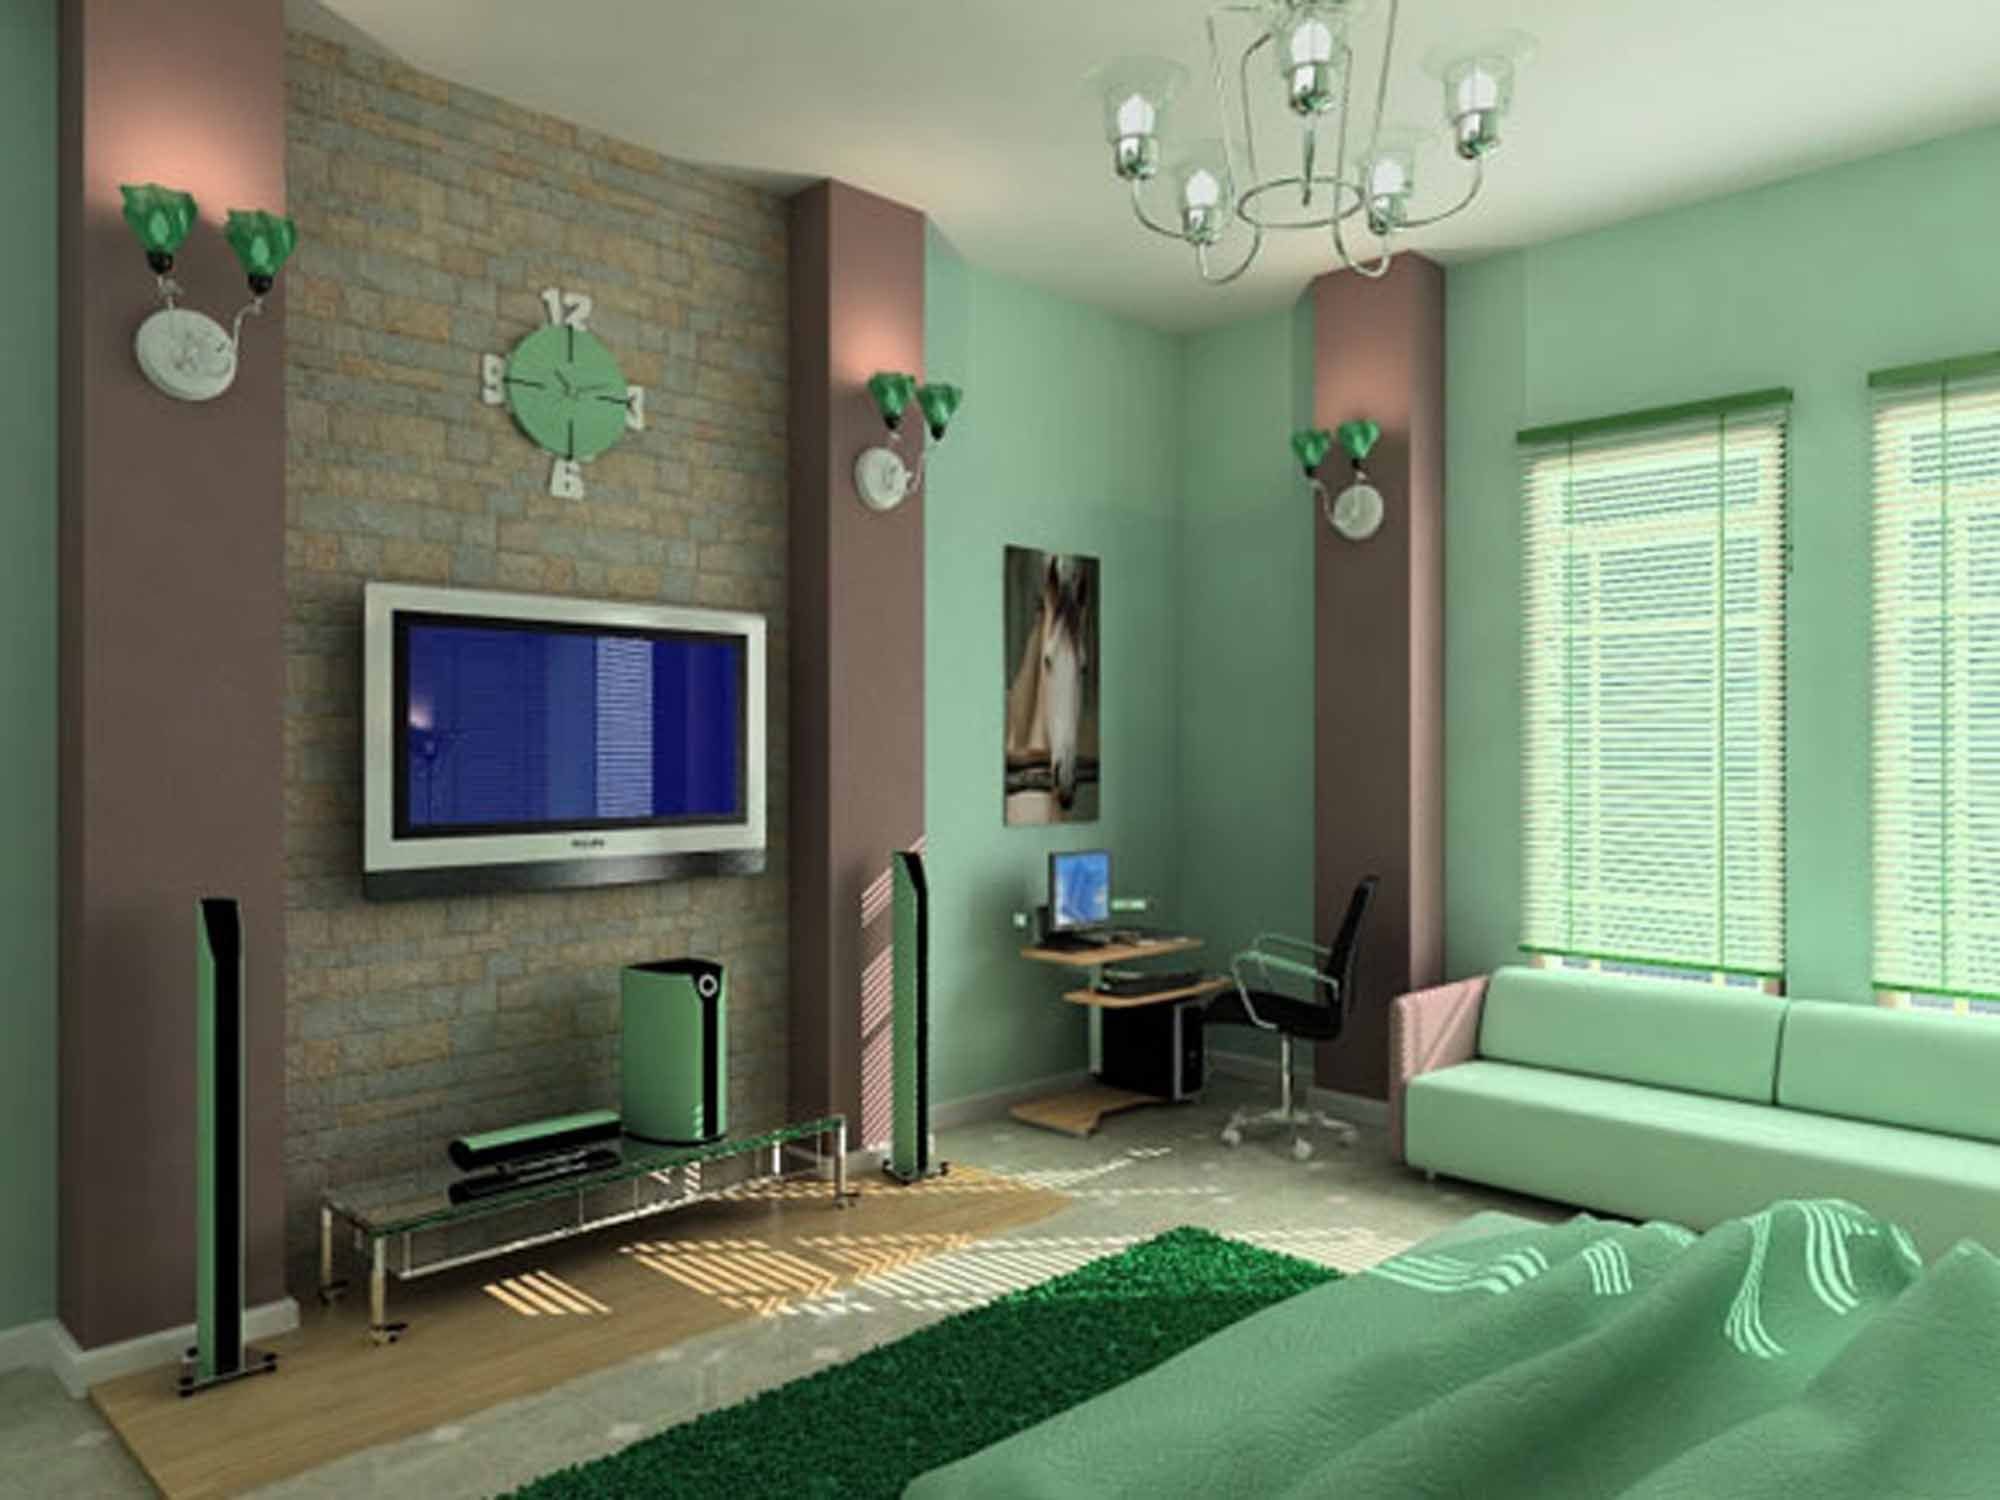 Simple Bedroom Interior Images green bedroom interior design green interior design green interior